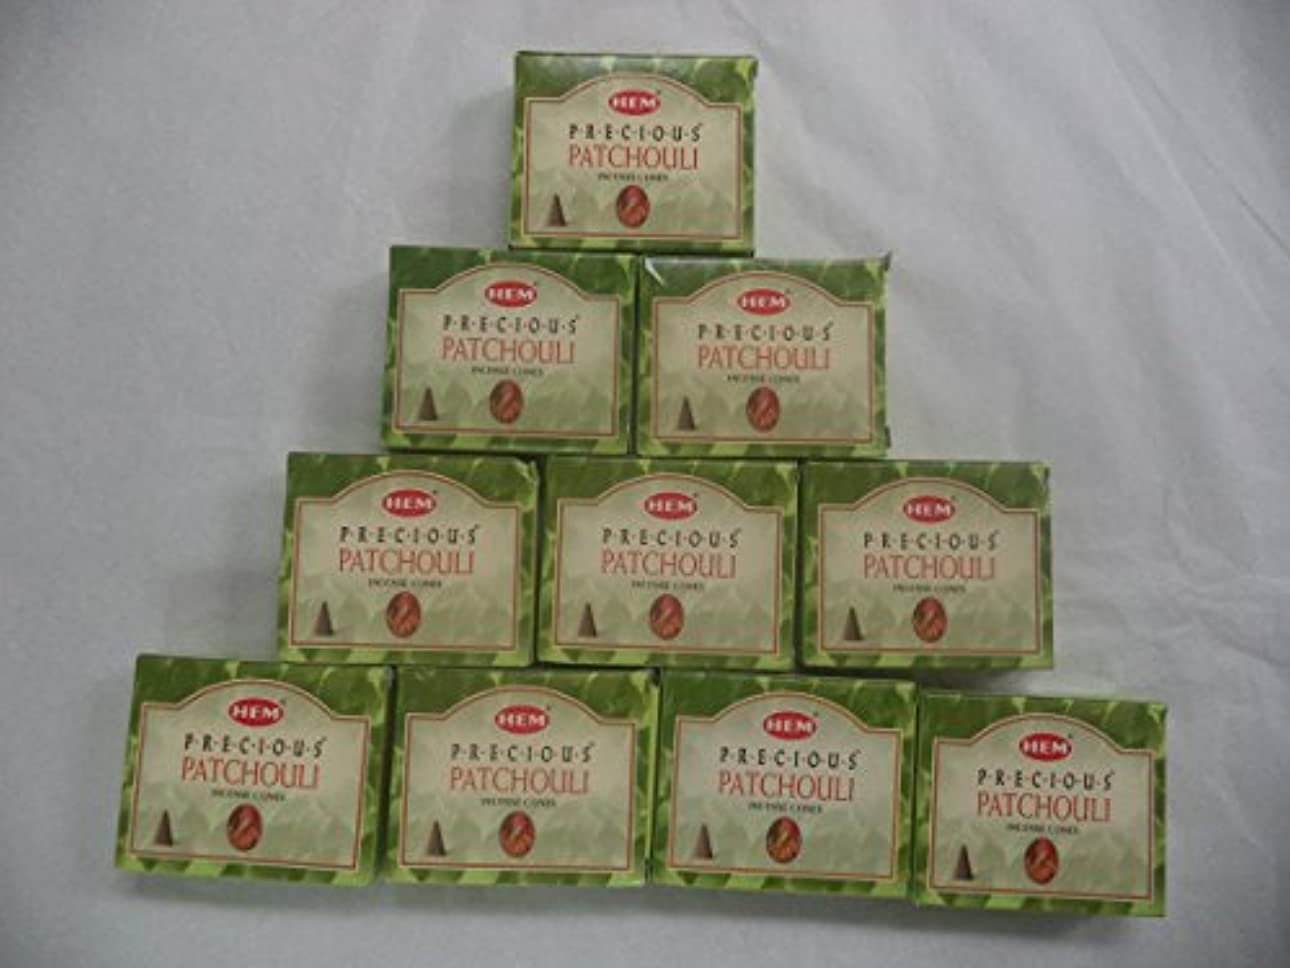 商品松特異なHEM Incense Cones: Precious Patchouli - 10 Packs of 10 = 100 Cones by Hem